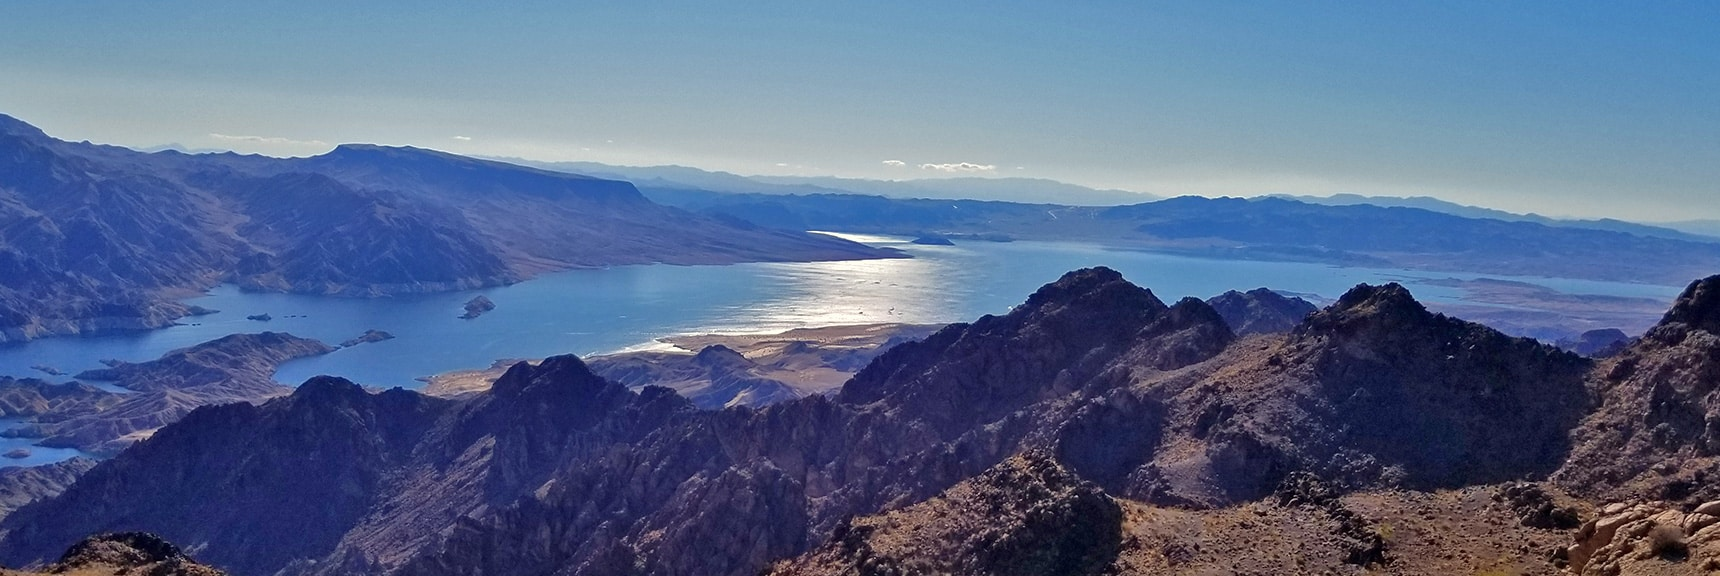 Fortification Hill and View Toward Hoover Dam Area from Hamblin Mt. Summit | Hamblin Mountain, Lake Mead National Conservation Area, Nevada